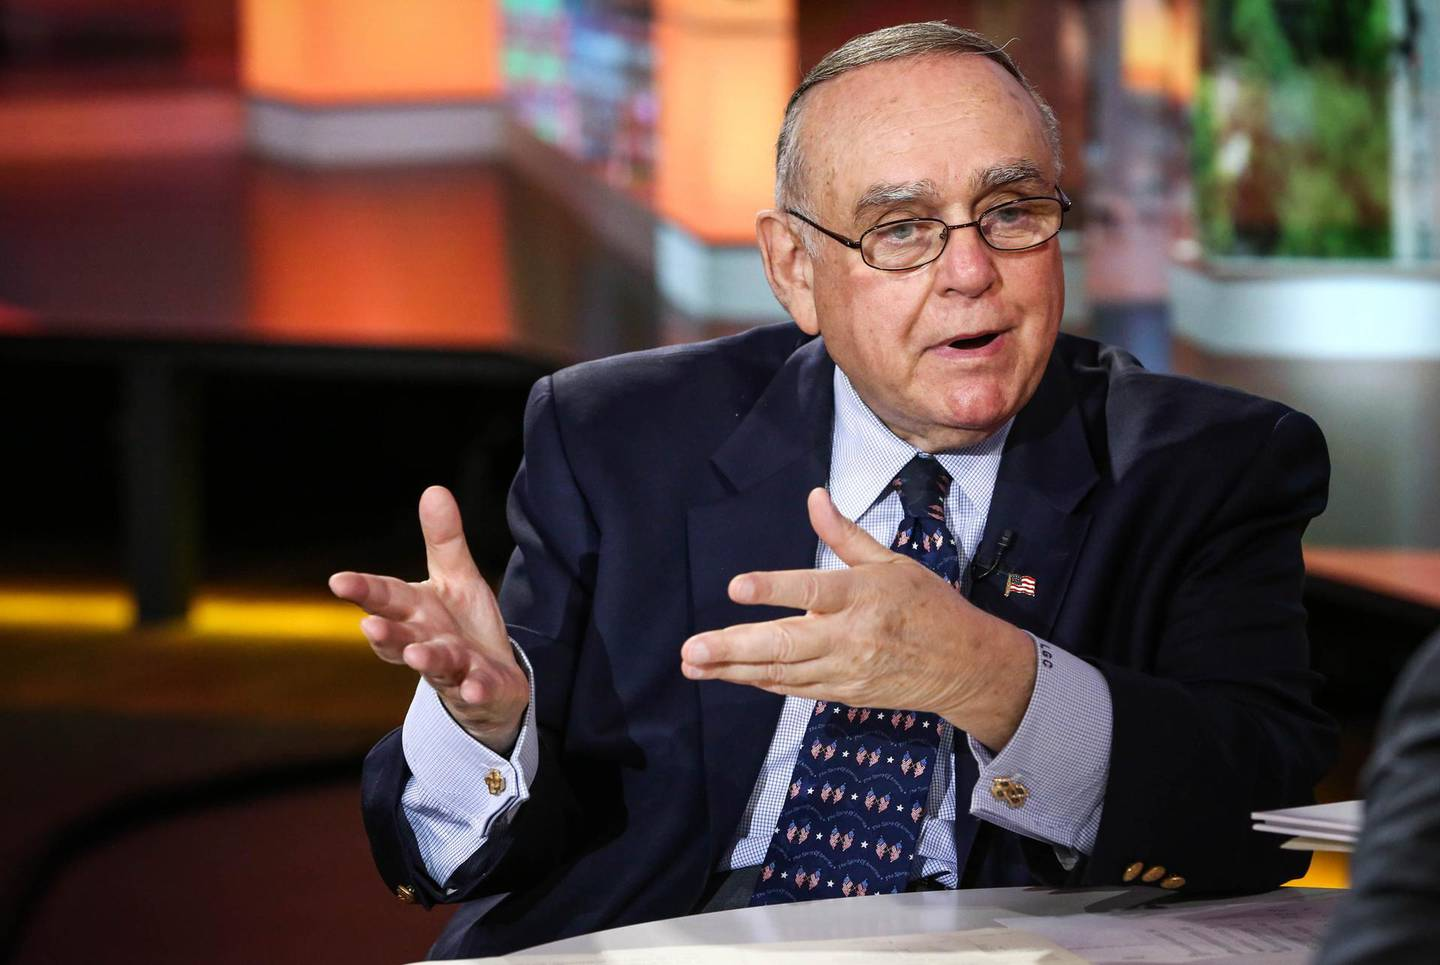 Leon Cooperman, chief executive officer of Omega Advisors Inc., speaks during an interview in New York, U.S., on Tuesday, Oct. 11, 2016. Cooperman, the hedge-fund manager accused of insider trading, said Tuesday that his Omega Advisors Inc. will continue investing money for clients even as its assets have dropped to $4 billion. Photographer: Christopher Goodney/Bloomberg